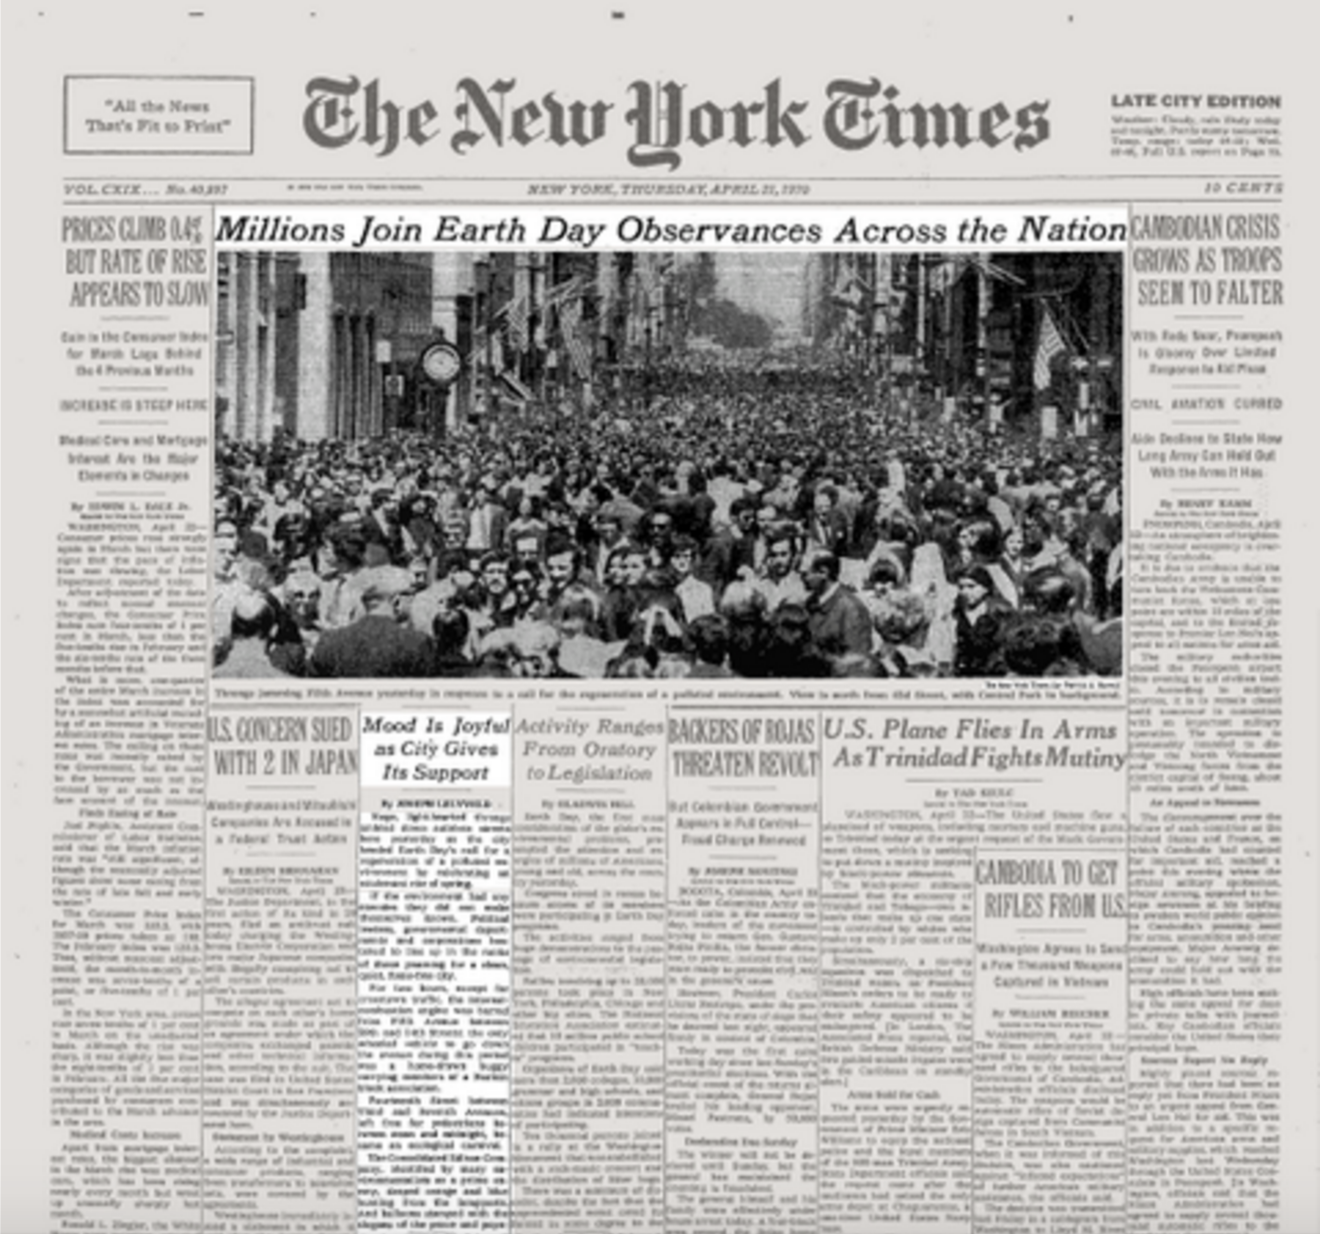 """First celebrated Earth day  - New York, 22 April 1970  We only have one earth, so we need to take care of her.  That's what Senator Nelson believed. He was disturbed that an issue as important as our environment was not addressed in politics or by the media, so he created the first Earth Day, on April 22, 1970. An estimated 20 million people nationwide attended festivities that day. It was a truly astonishing grassroots explosion and it was also the year Simon and Garfunkel released """"Bridge over Troubled Water"""" composed by Paul Simon, it was the last song recorded for their fifth and final album ... vocals in New York and instrumentals recorded in California."""